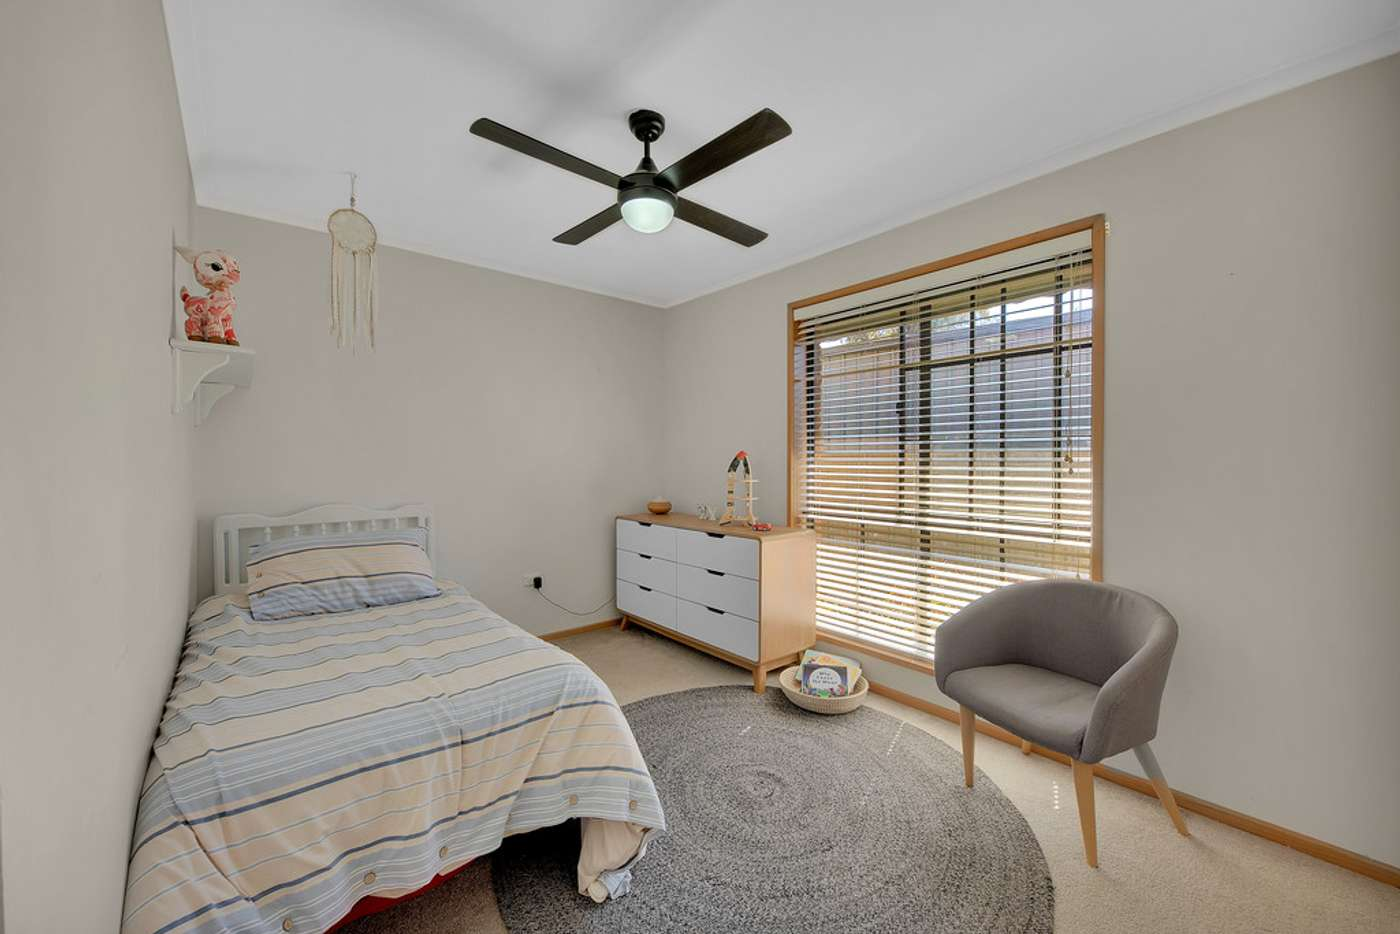 Sixth view of Homely house listing, 12 Prosper Court, Wodonga VIC 3690